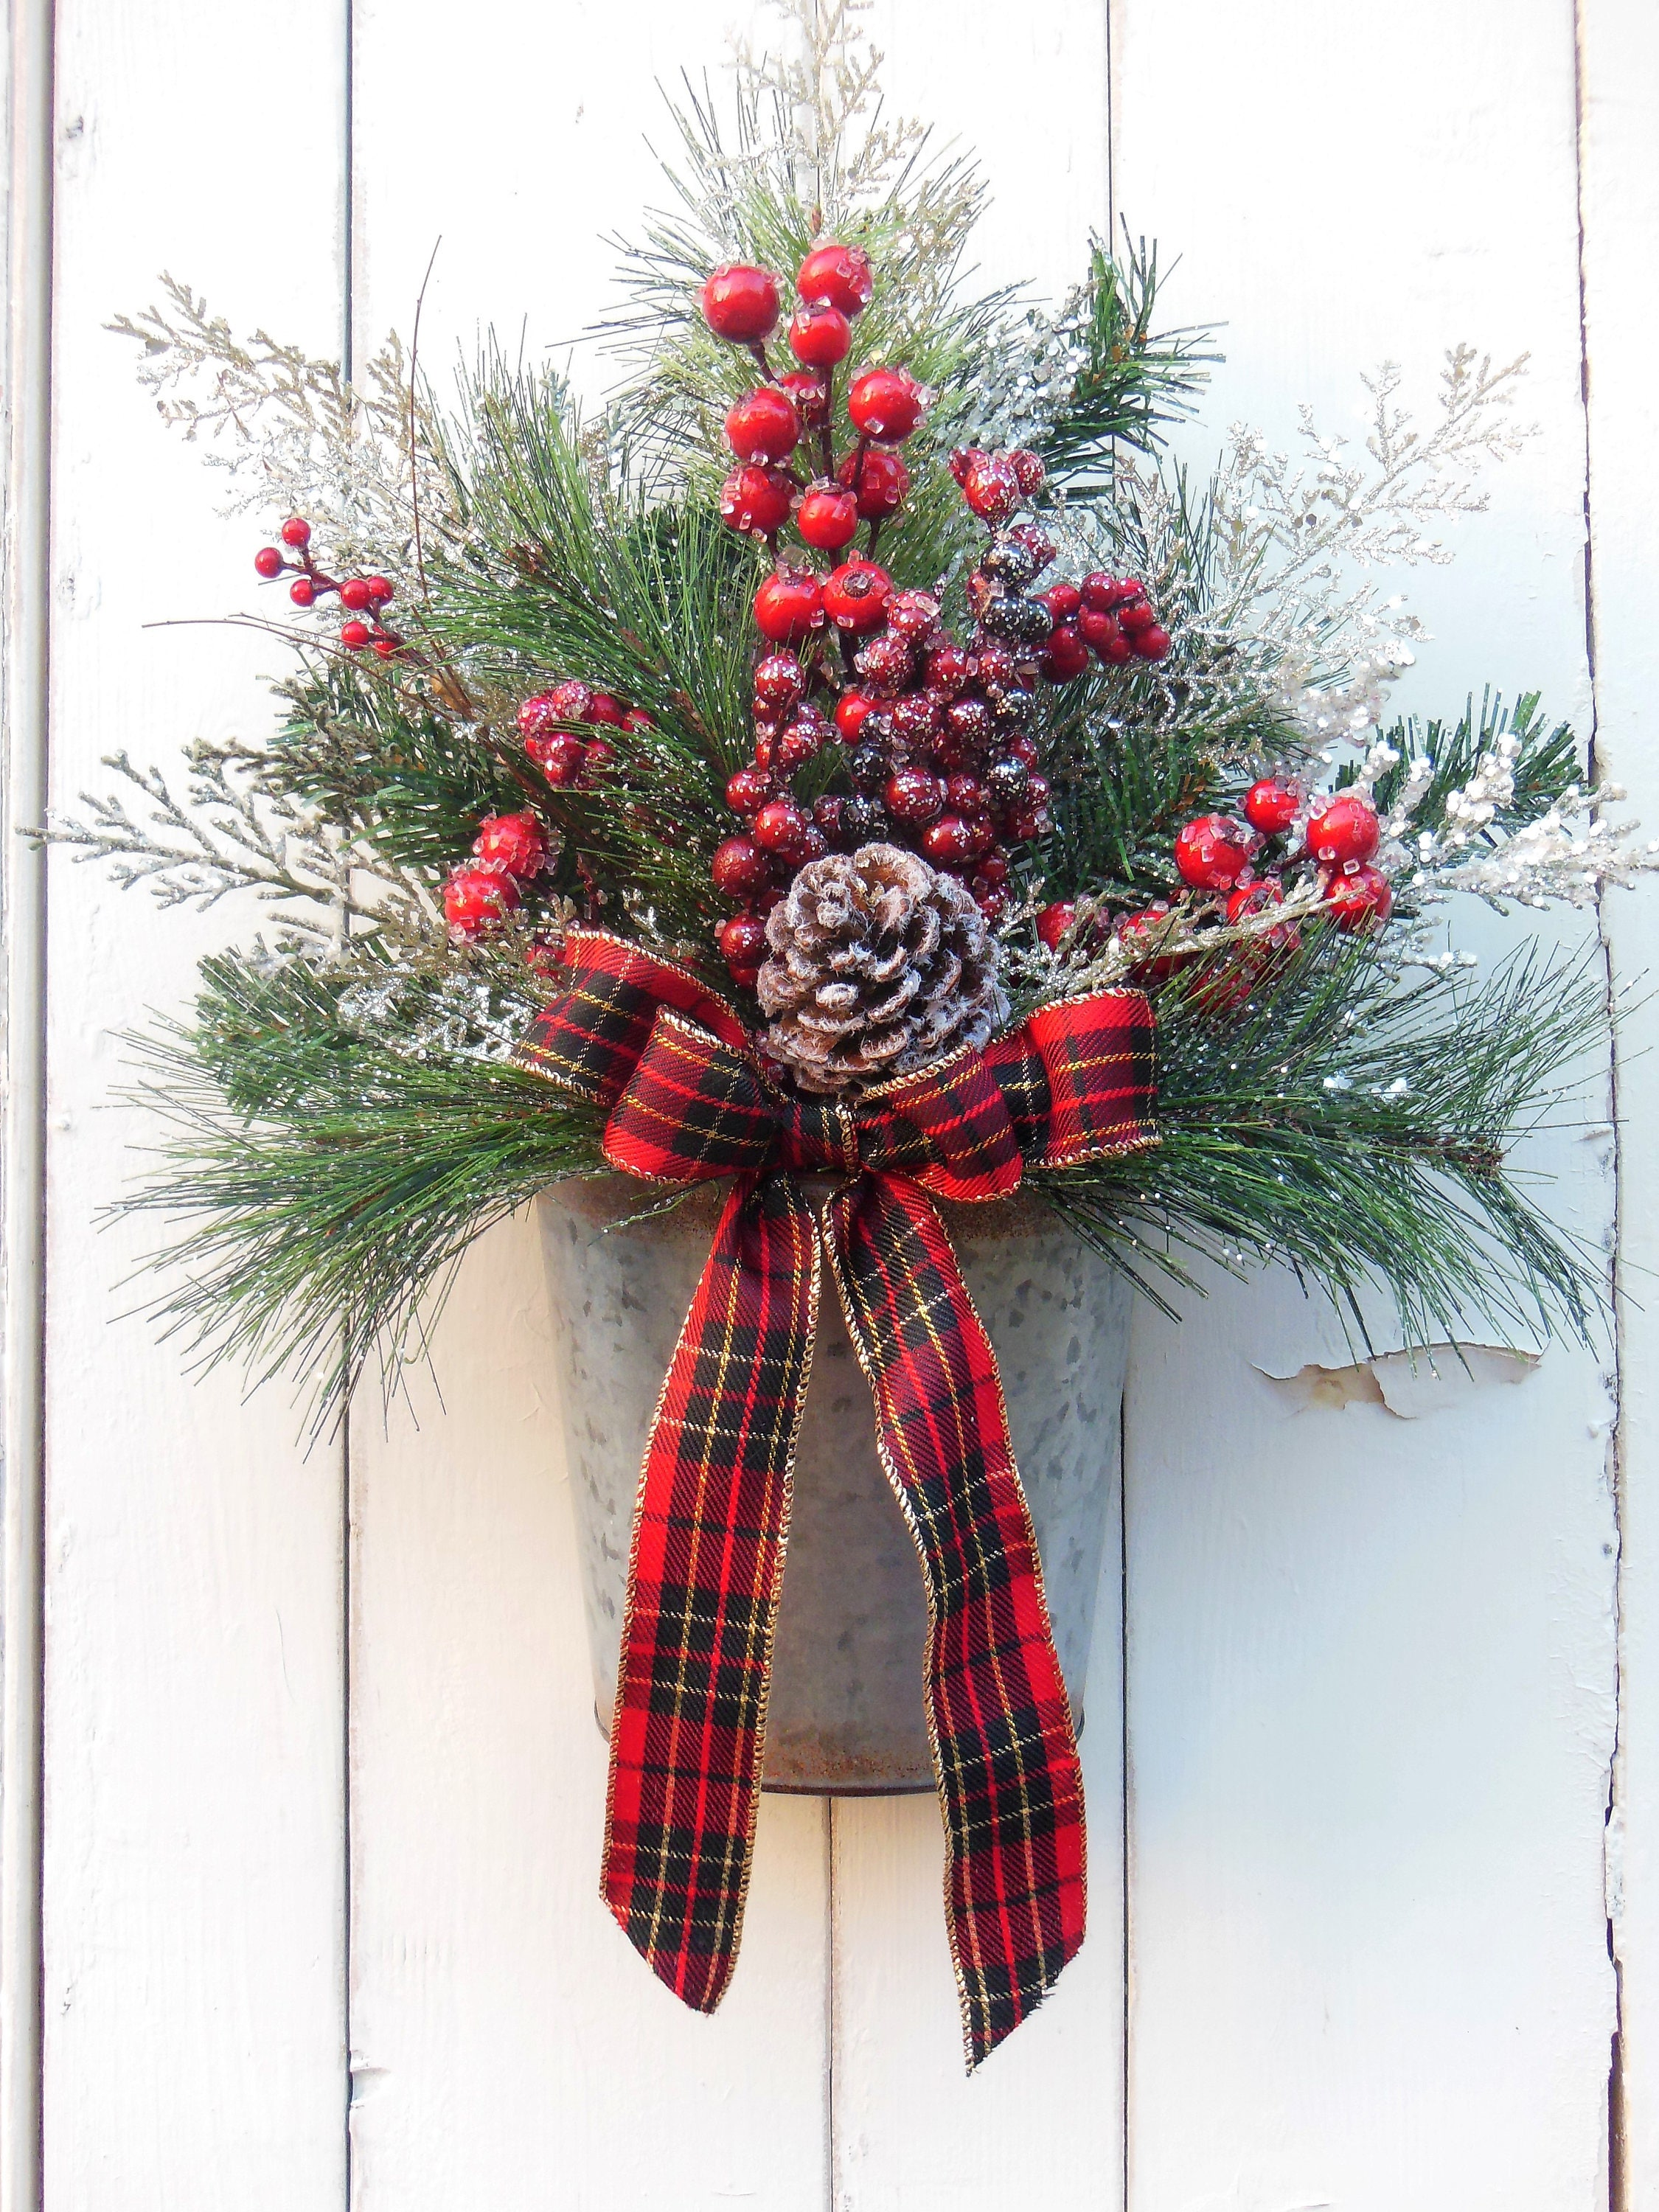 com wreath doors scrapheap door archives christmas with decorating wreaths for challenge ideas best